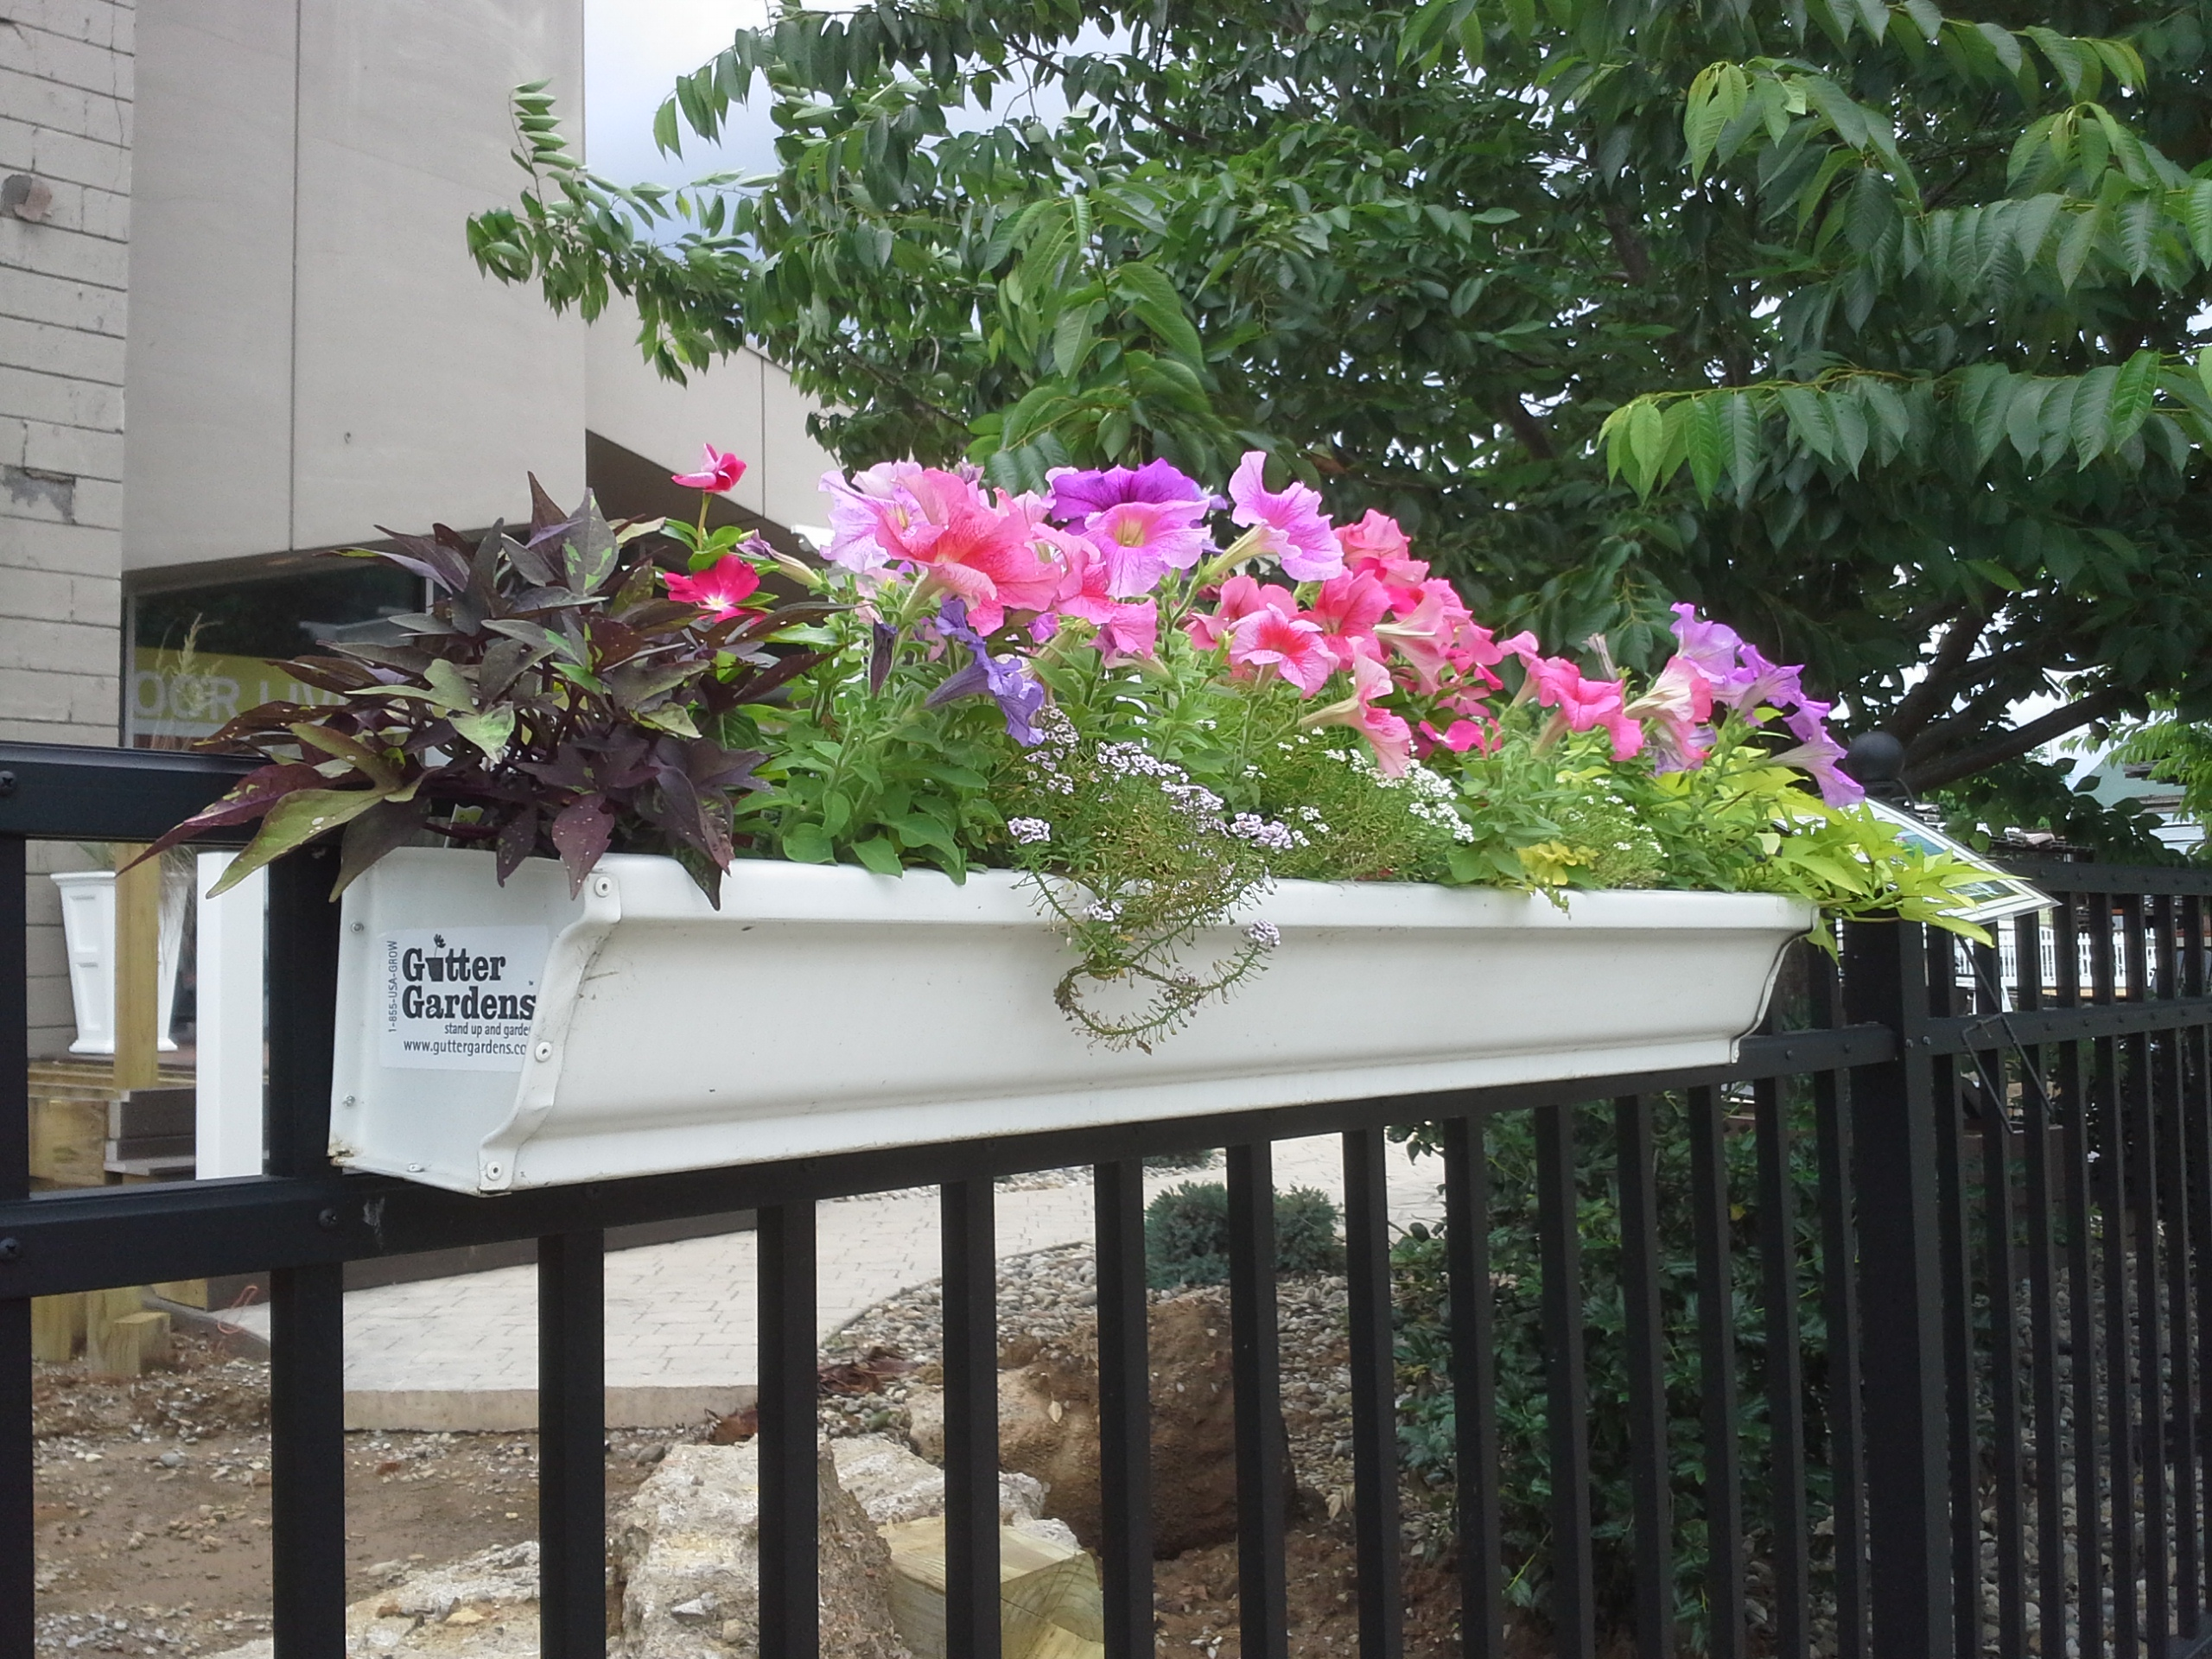 Gutter Garden Planters Hang From Many Different Kinds /sizes Of Railings.